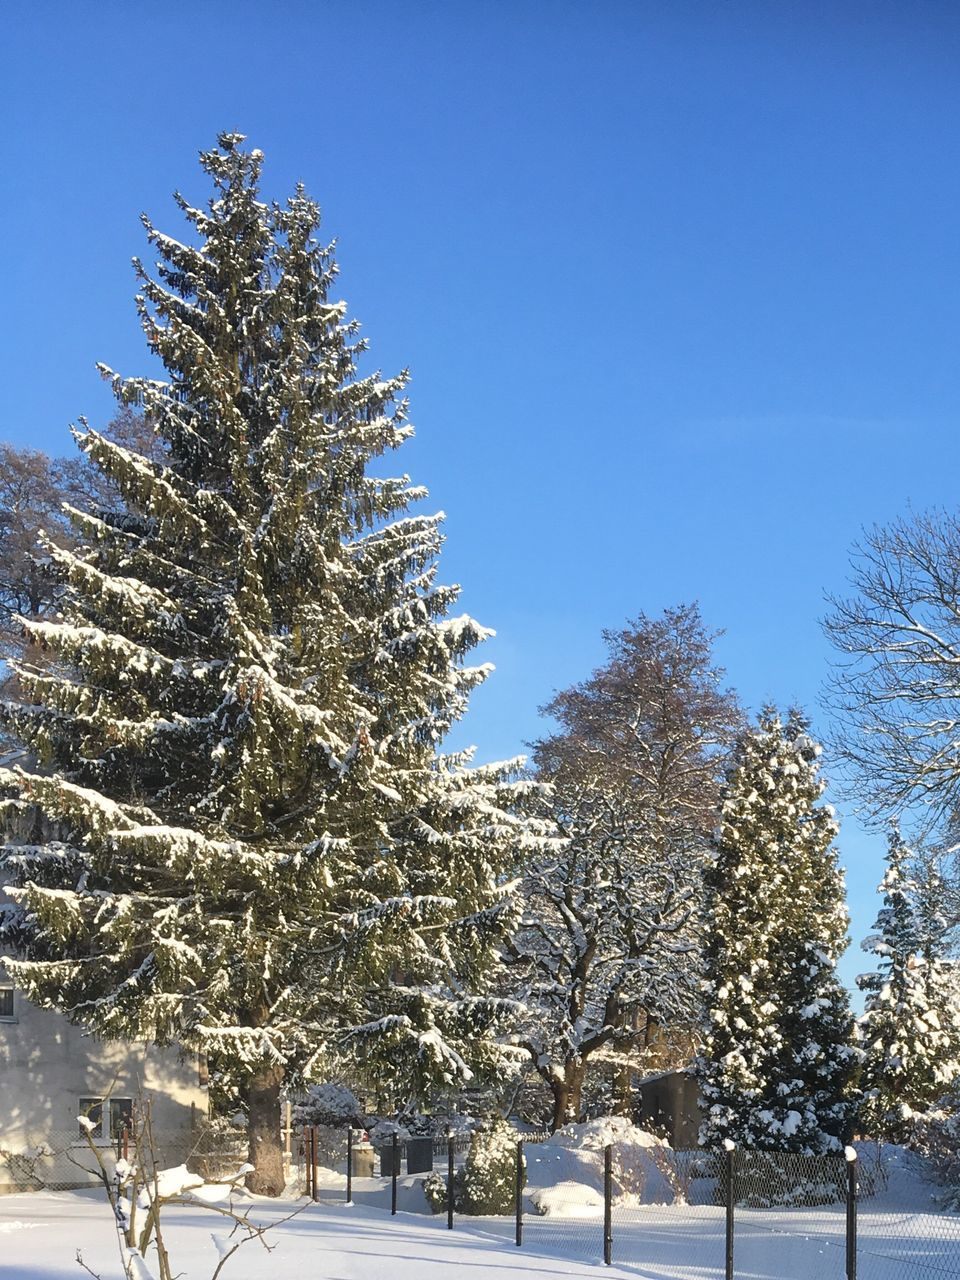 tree, snow, winter, cold temperature, nature, beauty in nature, no people, clear sky, outdoors, branch, day, christmas, tranquility, growth, scenics, close-up, sky